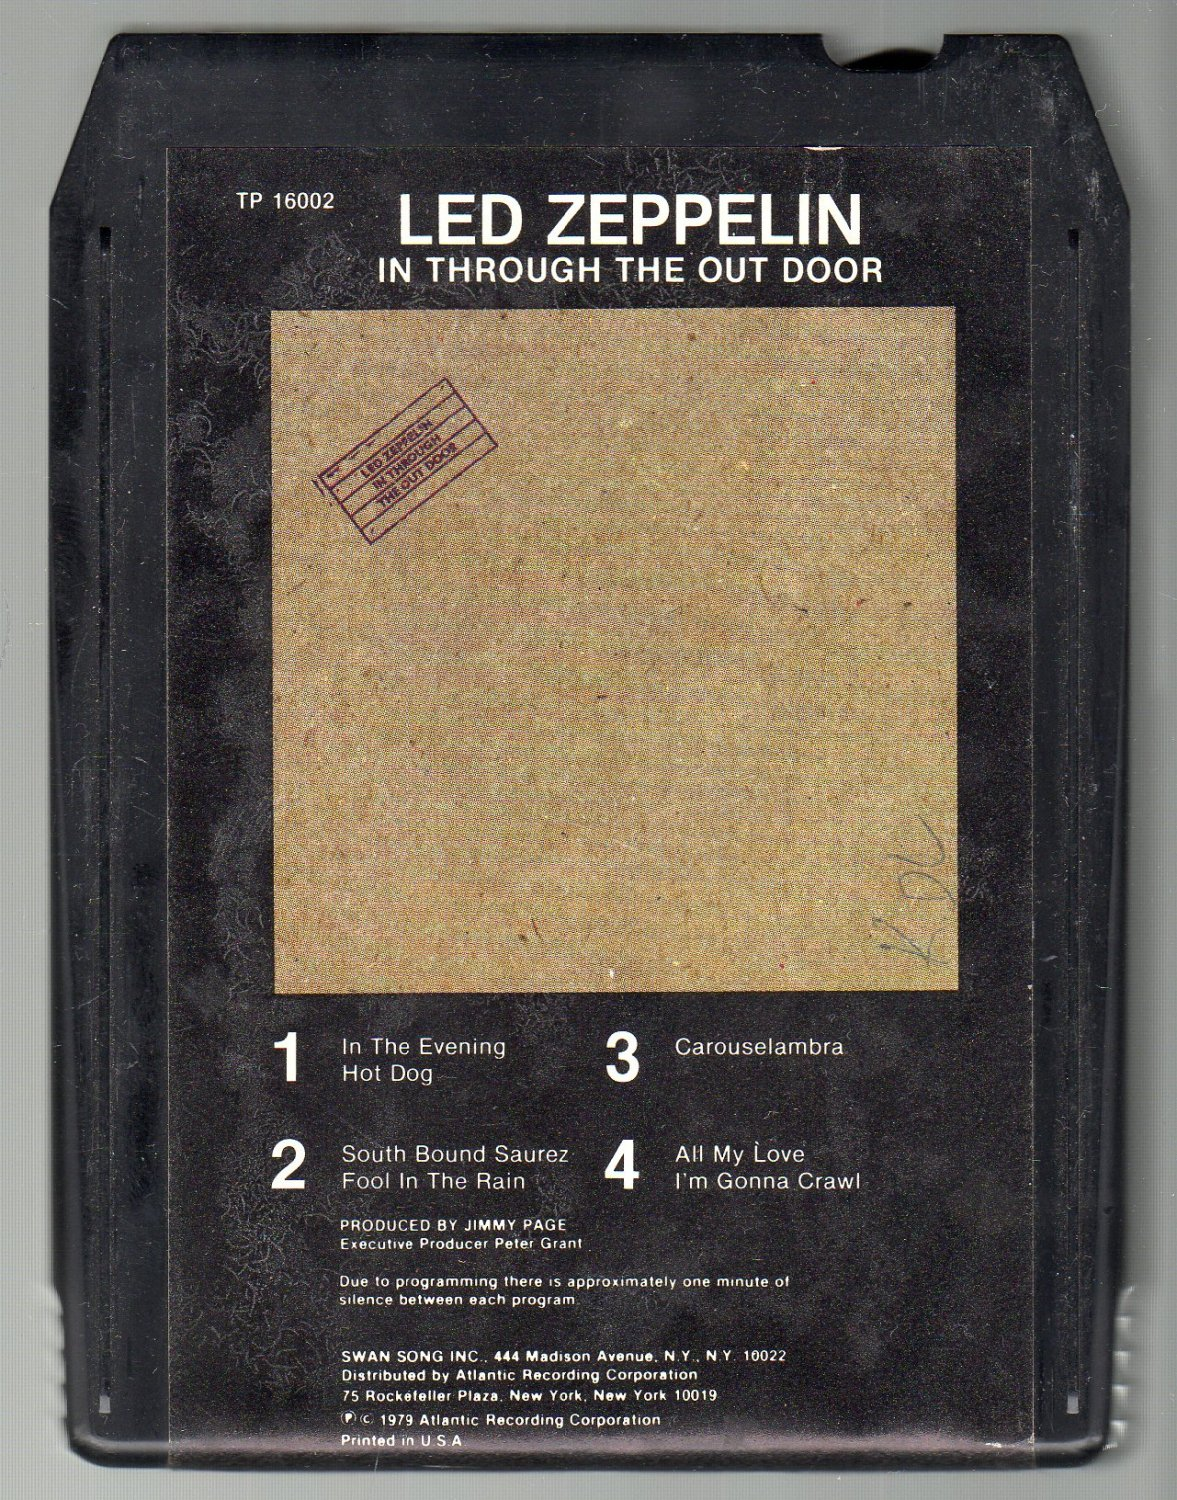 Led Zeppelin - In Through The Out Door SOLD 8-track tape